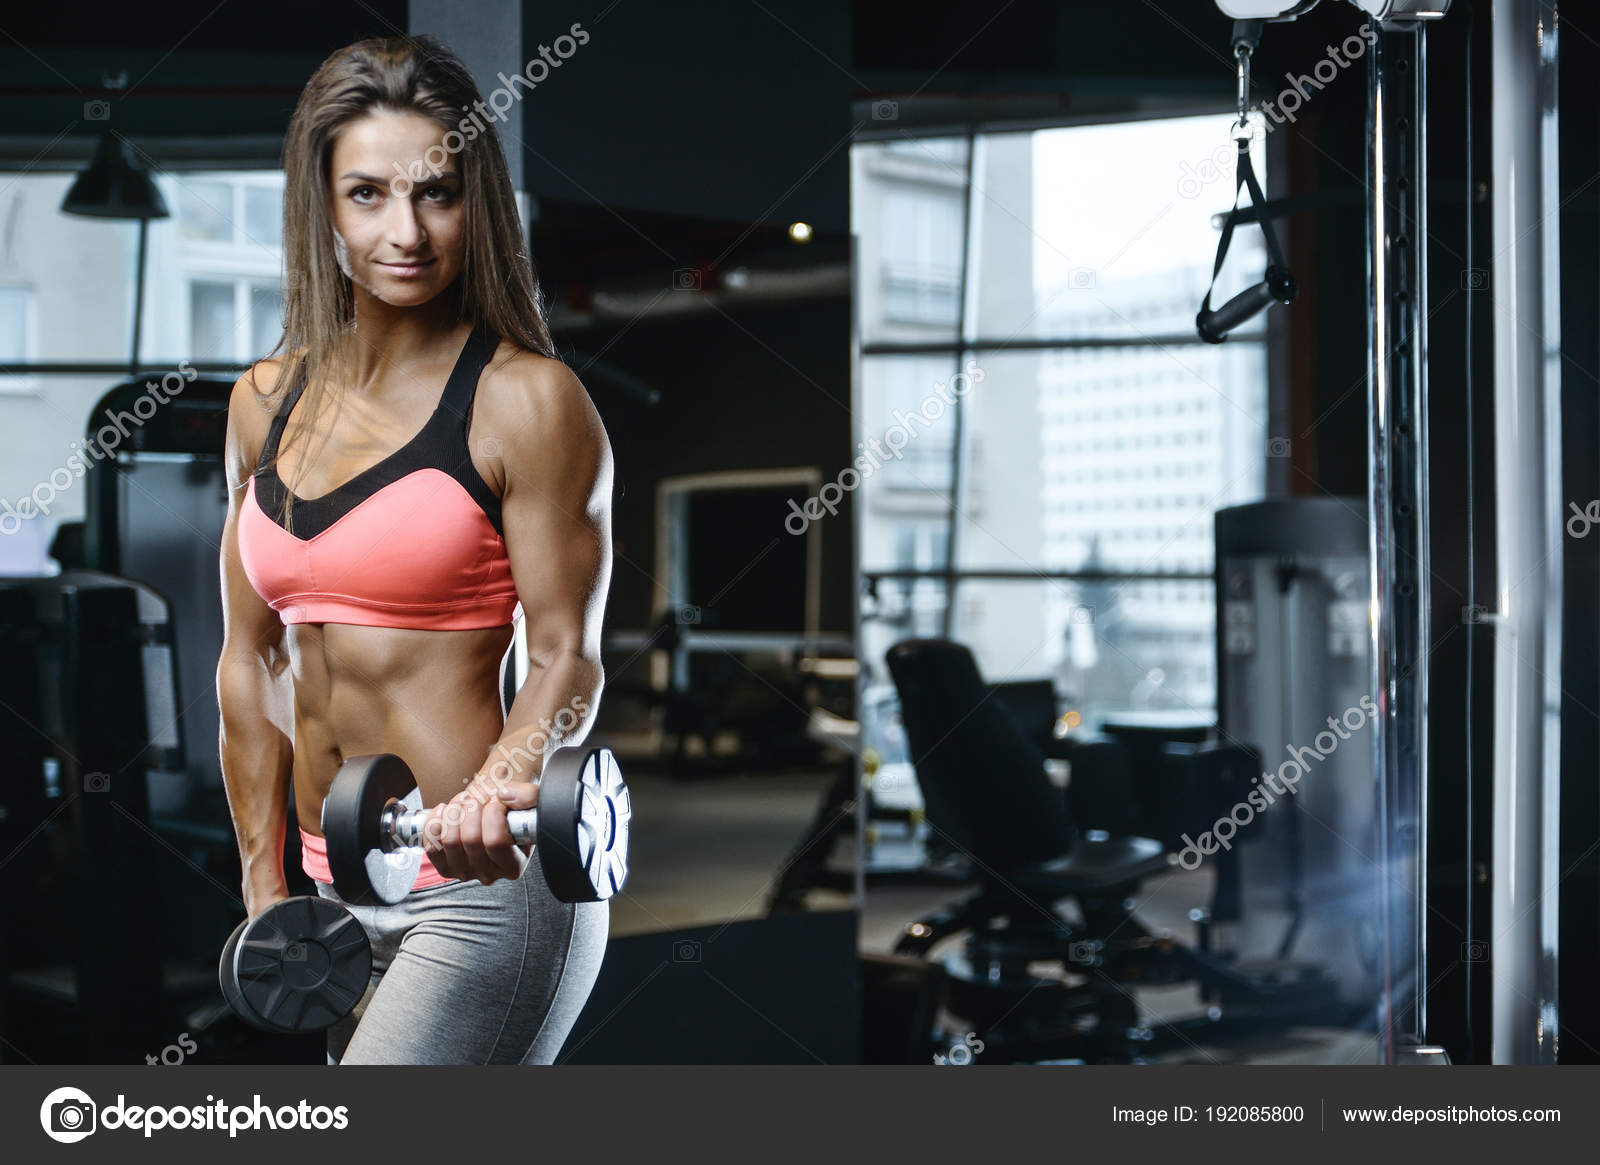 1f7b865bfe8e1 Beautiful strong sexy athletic muscular young caucasian fitness girl  workout training in the gym on diet pumping up abs muscles and posing  bodybuilding ...